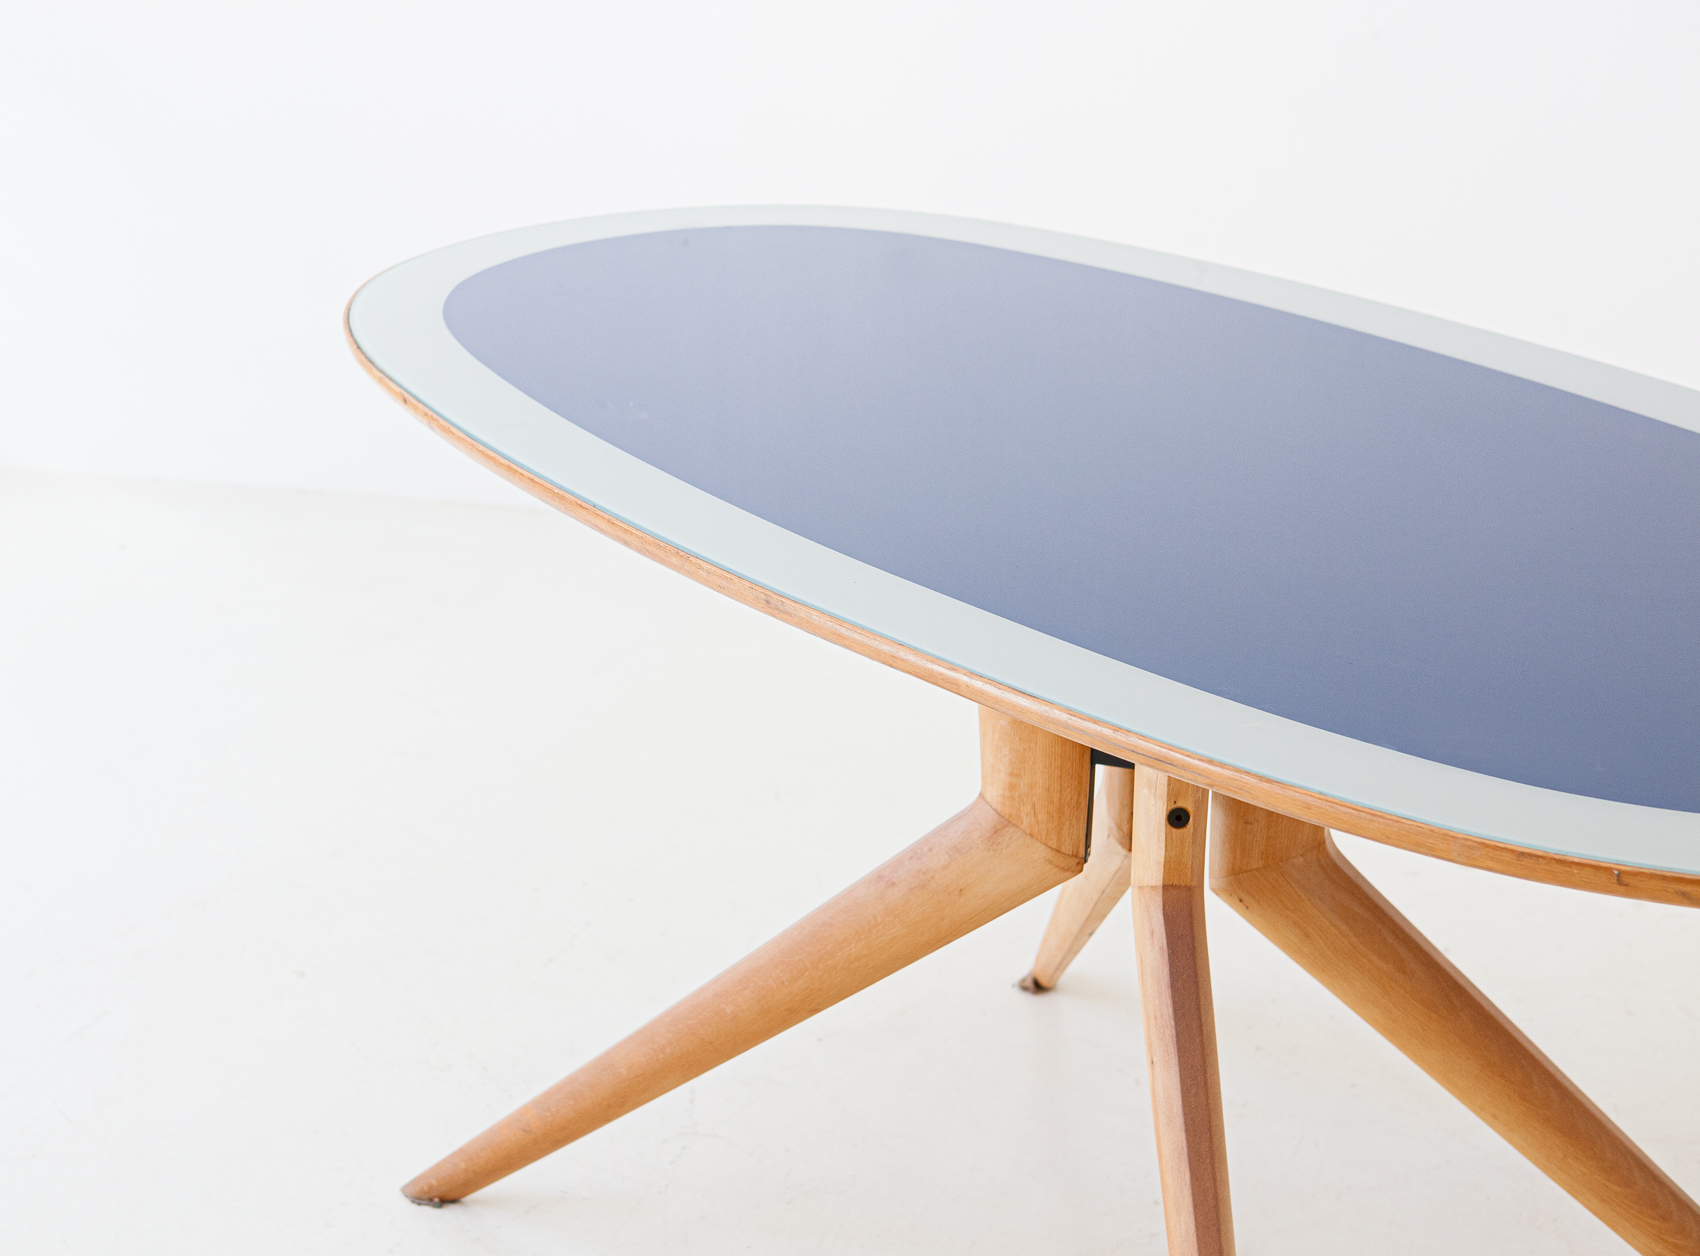 1950s-elliptical-dinin-table-with-blue-glass-top-5-t89